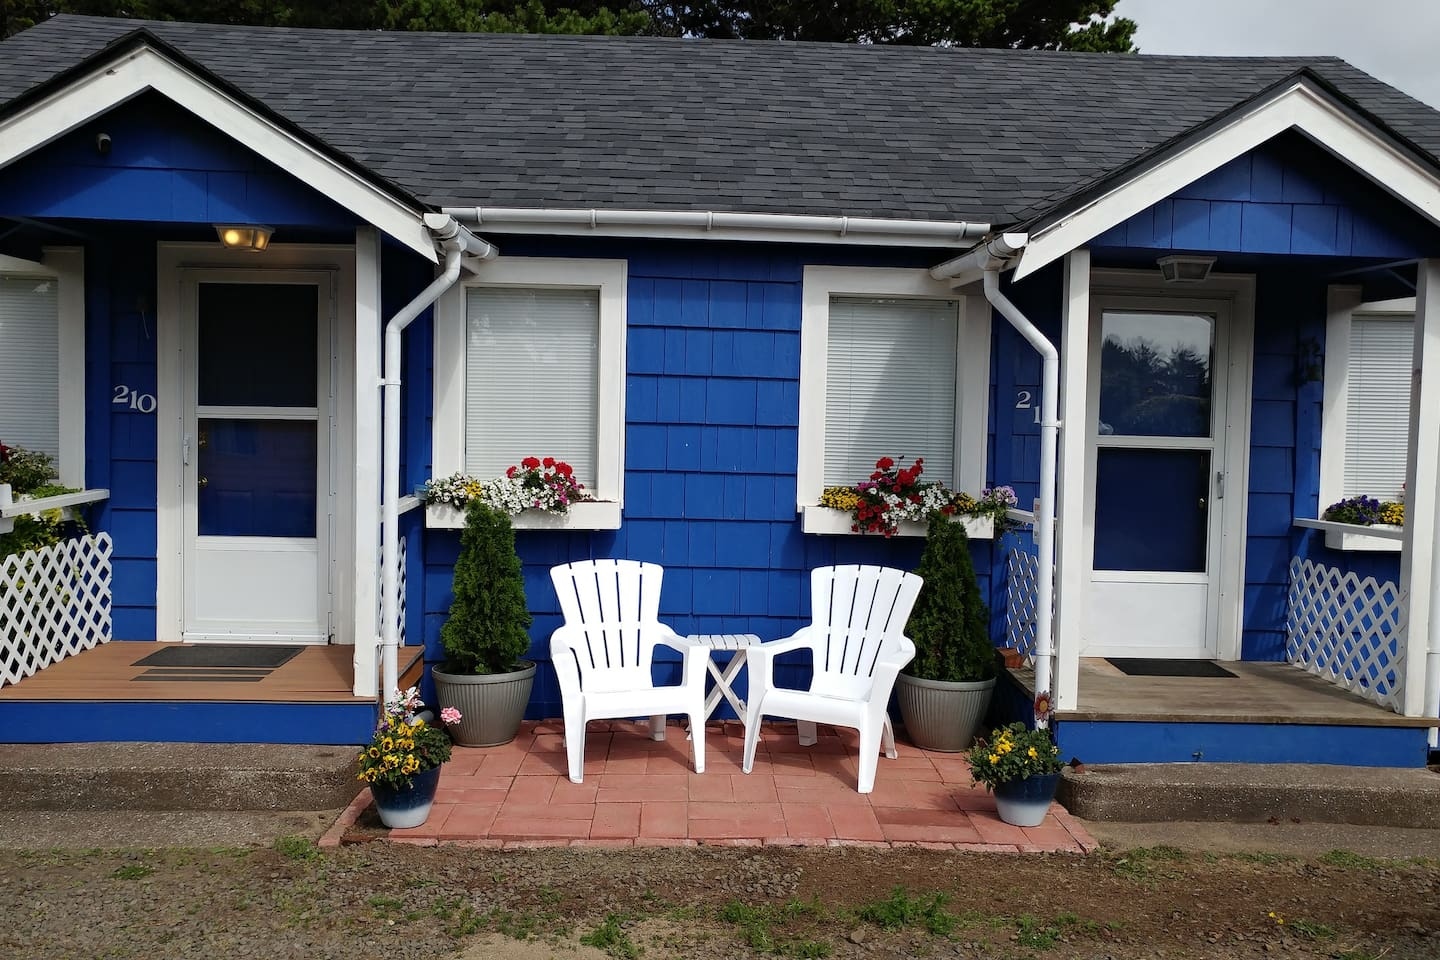 Have you ever wanted to try out a tiny home but hate the idea of the loft? The loggers of old solved that problem. We've borrowed the solution and updated it with duplex Cottage #212. Roughly 400 sq ft of easy, breezy vacation happiness. Take a look!